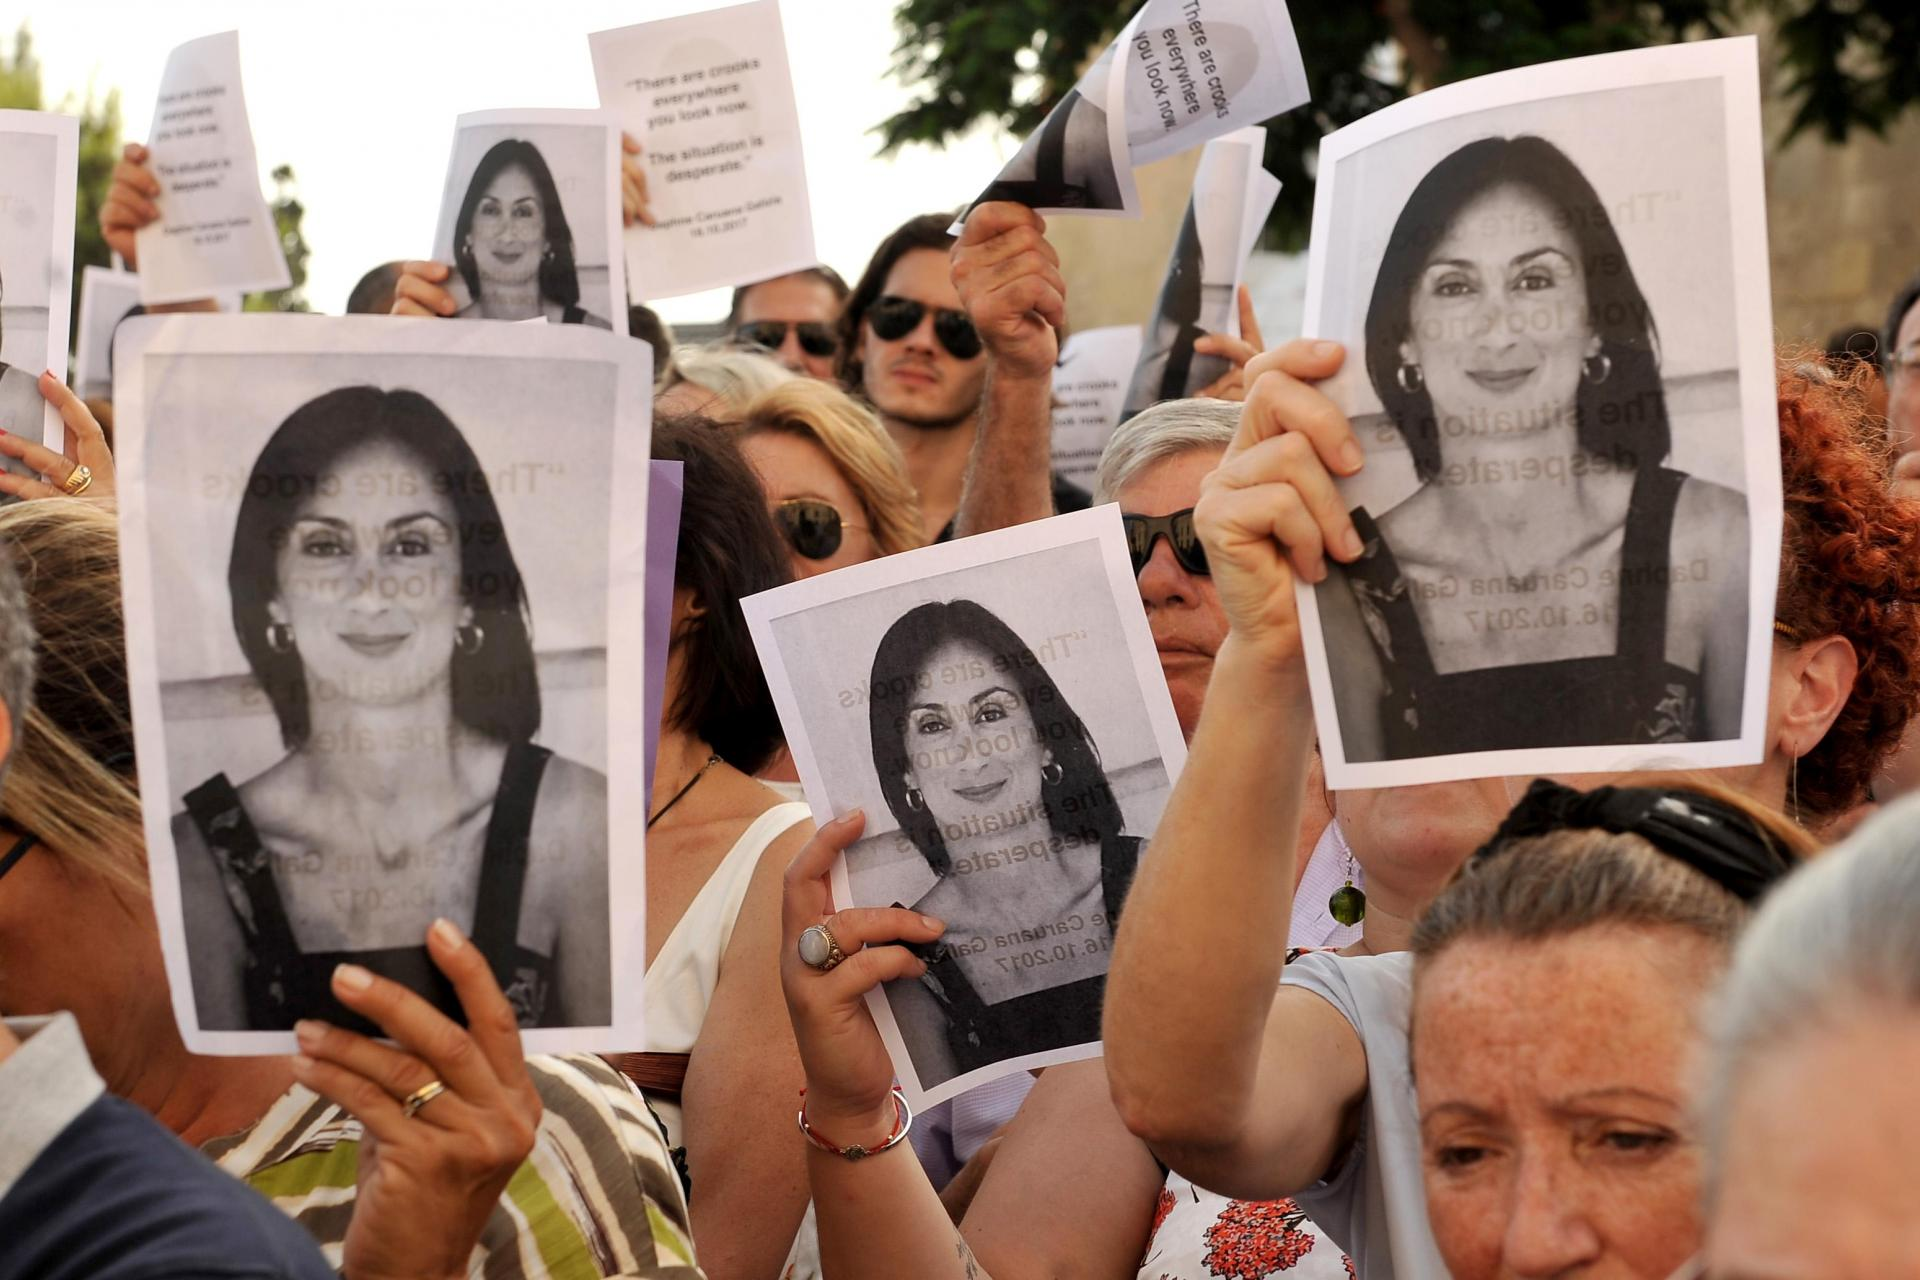 Activists hold up photos of Daphne Caruana Galizia. Ms Caruana Galizia was murdered in October 2017. Photo: Chris Sant Fournier